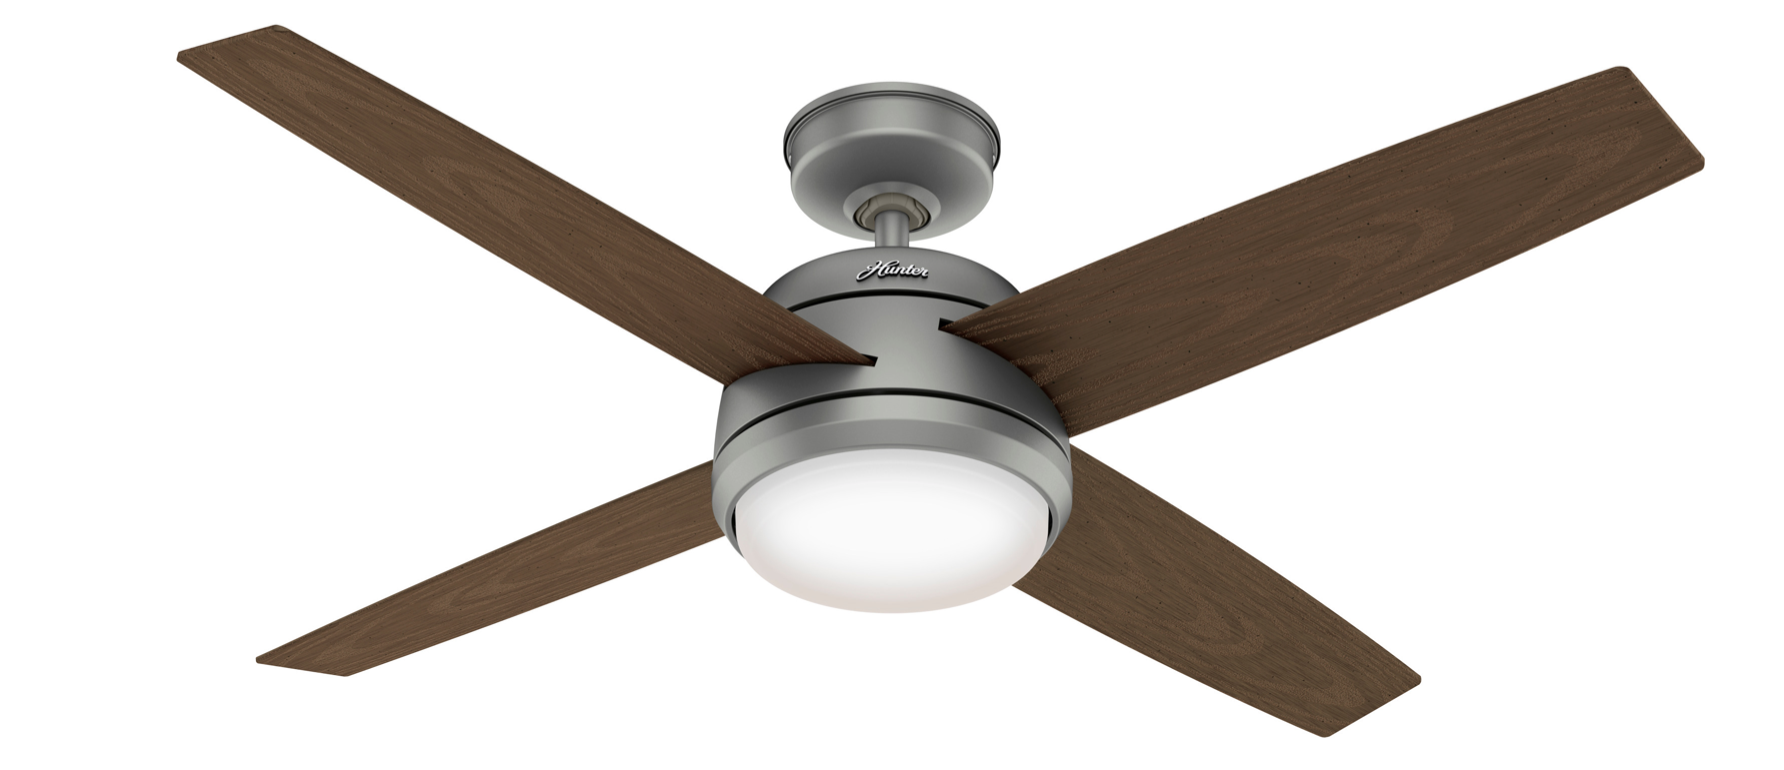 This durable fixture was built to withstand elements like rain and salt air.                                        BUY IT: $350; hunterfan.com